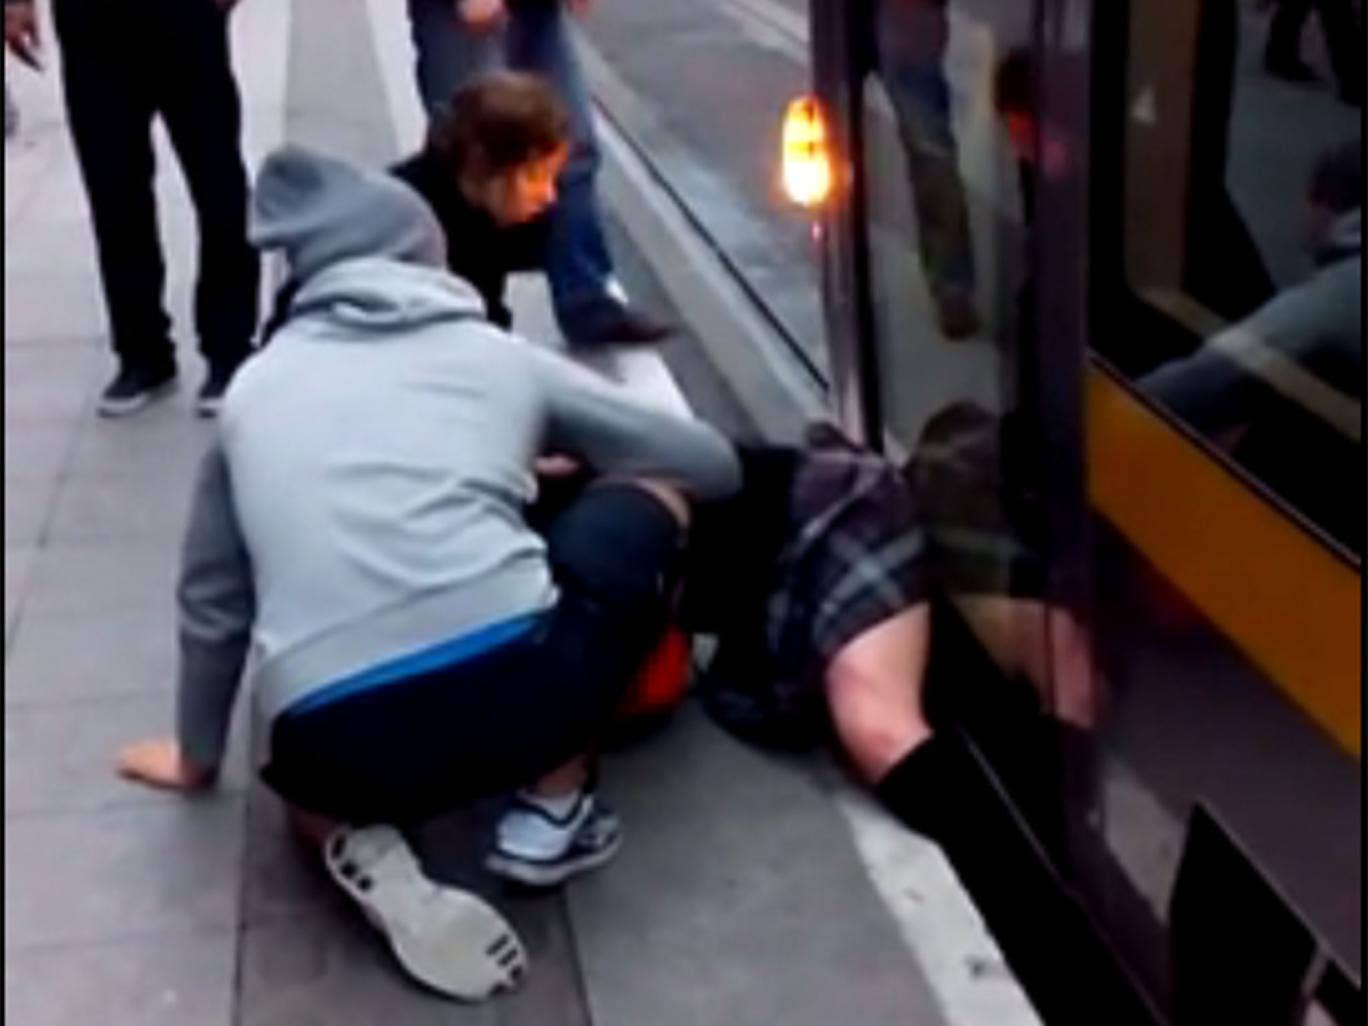 A still from footage showing a schoolgirl trapped under a tram in Dublin